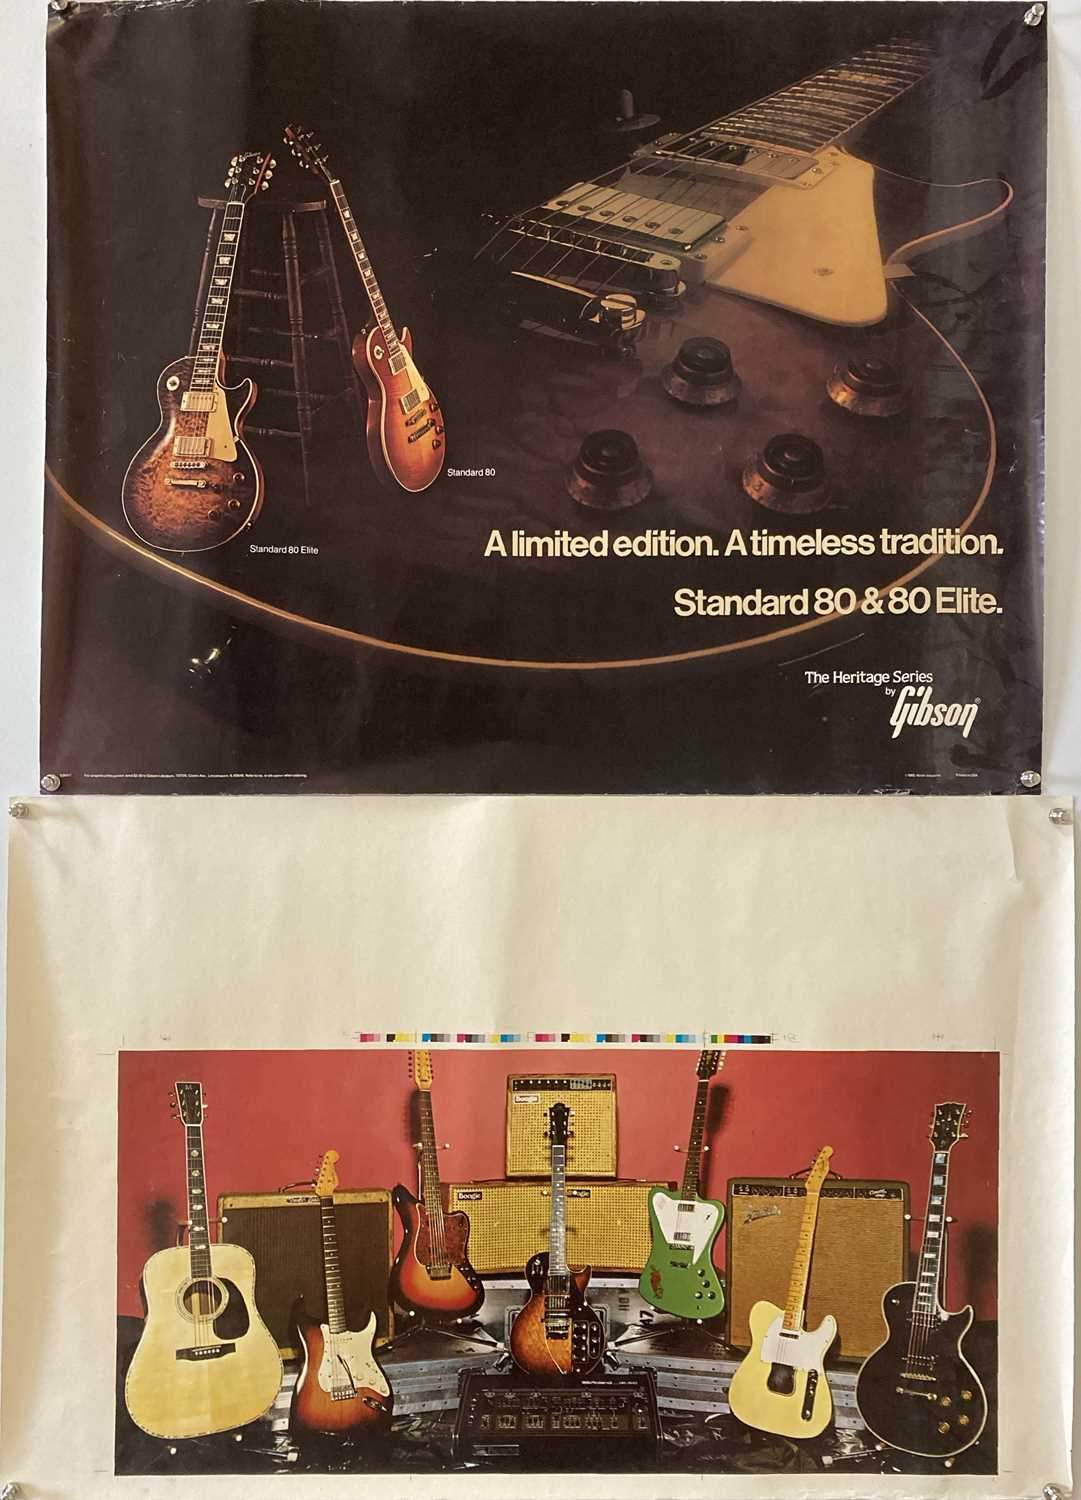 GUITAR PROMOTIONAL POSTERS. - Image 3 of 3